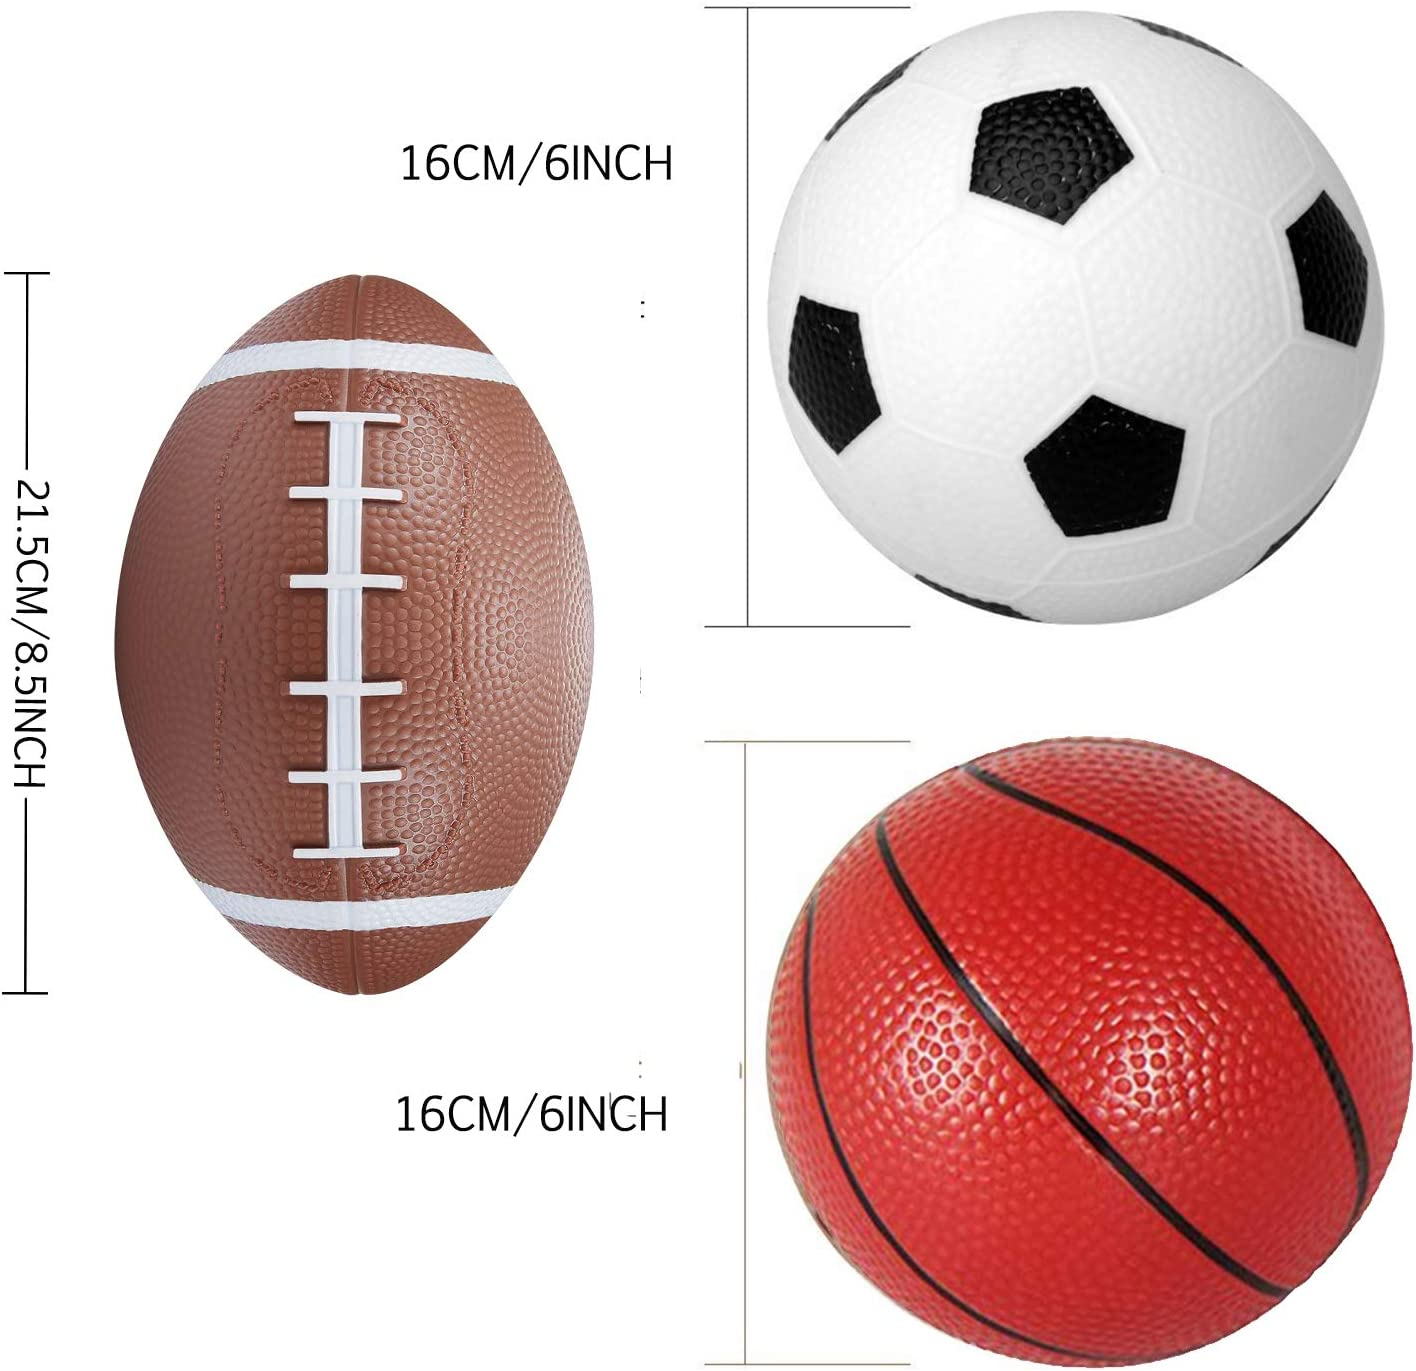 Sports Balls Set With 6Soccer 6Basketball 8.5Rugby 3baseballs Indoor Outdoor Office Playground Beach Games For Pool Door Basketballs Hoops Boys Girls Kids Toddlers Adults With Air Pump 4 PACK